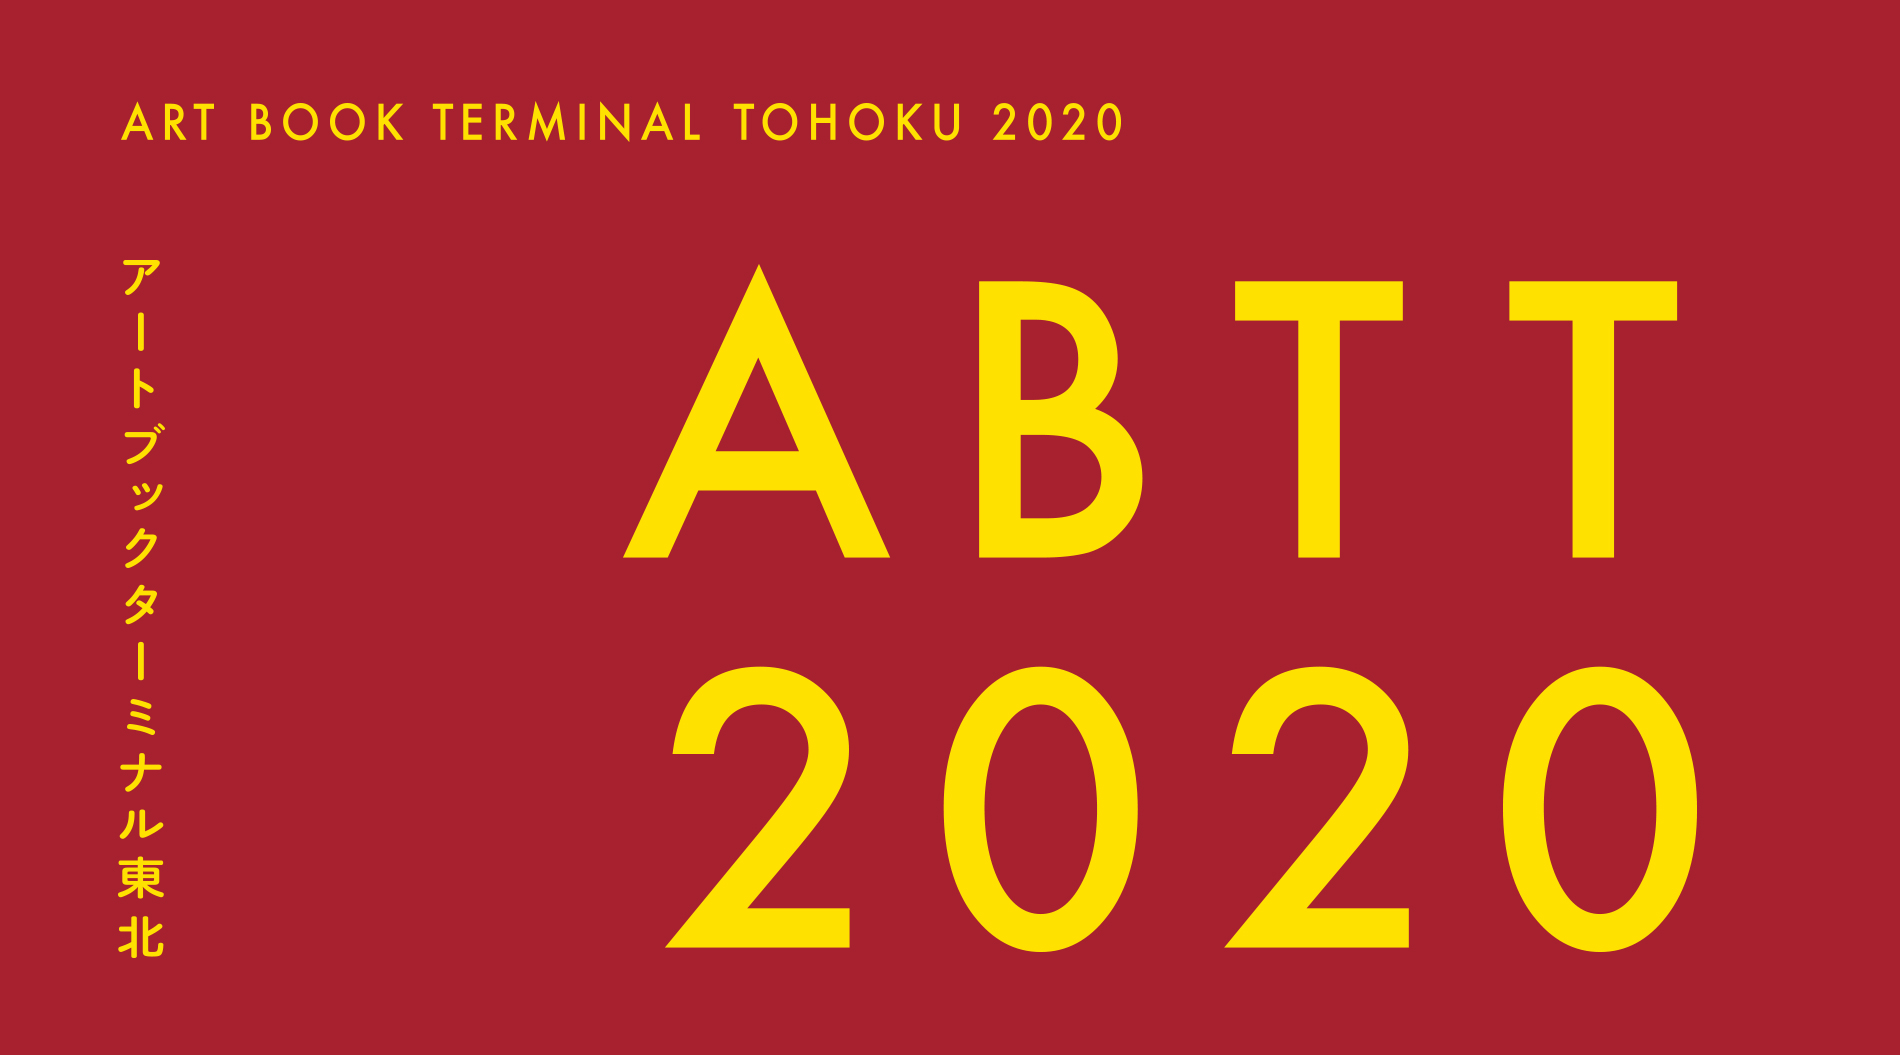 ART BOOK TERMINAL TOHOKU 2020